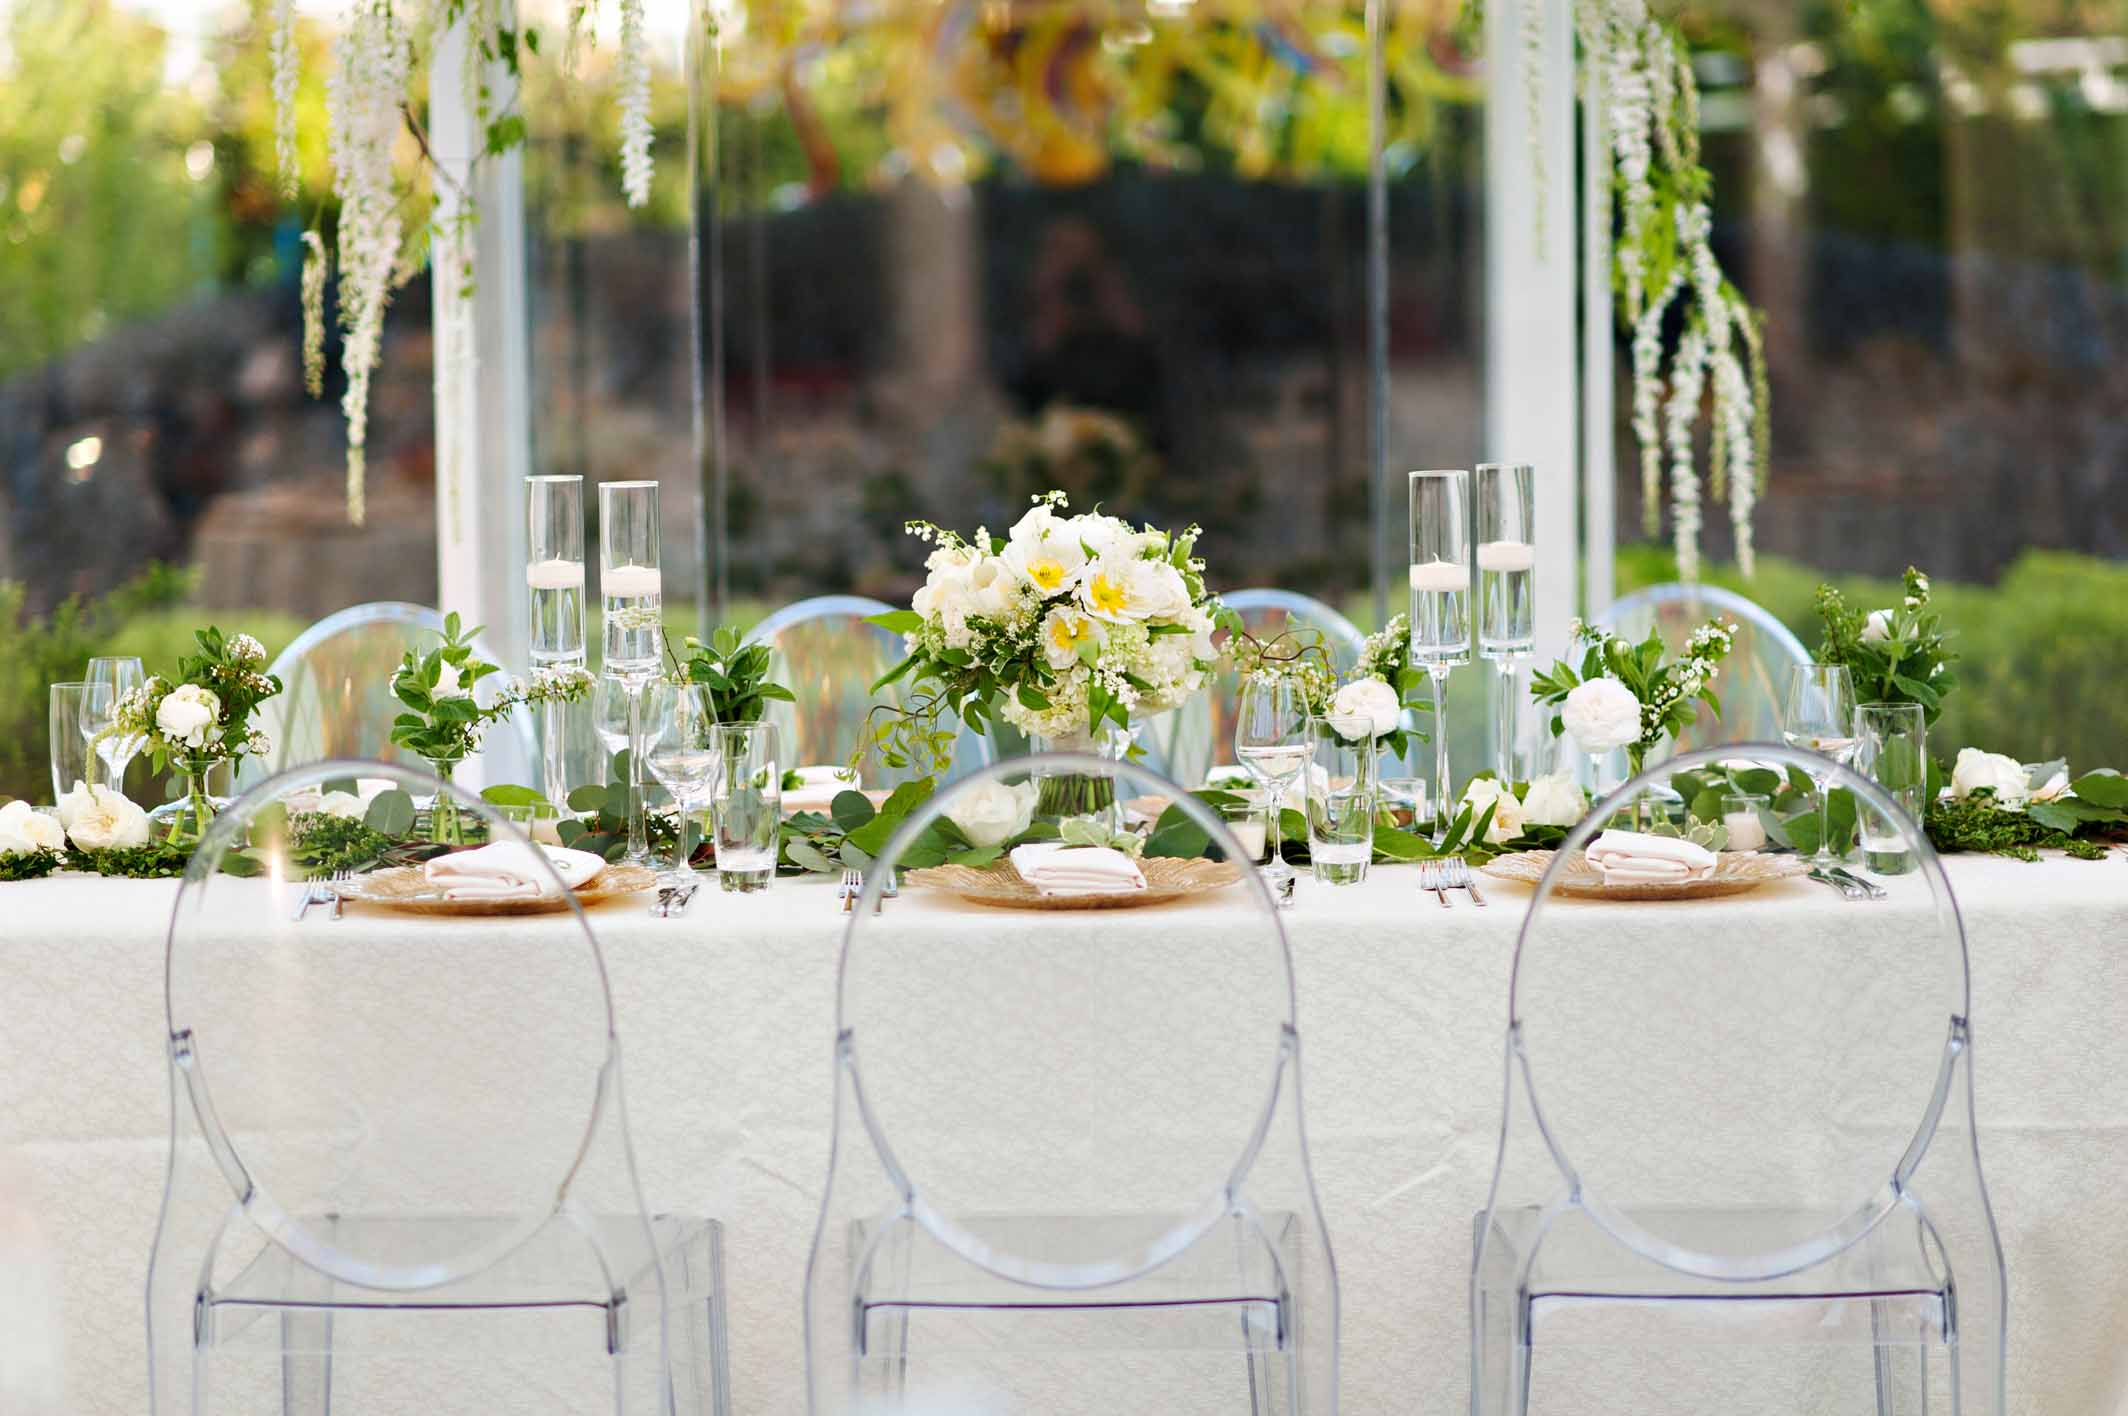 Wedding head table lined with greenery and spring flowers with clear ghost chairs